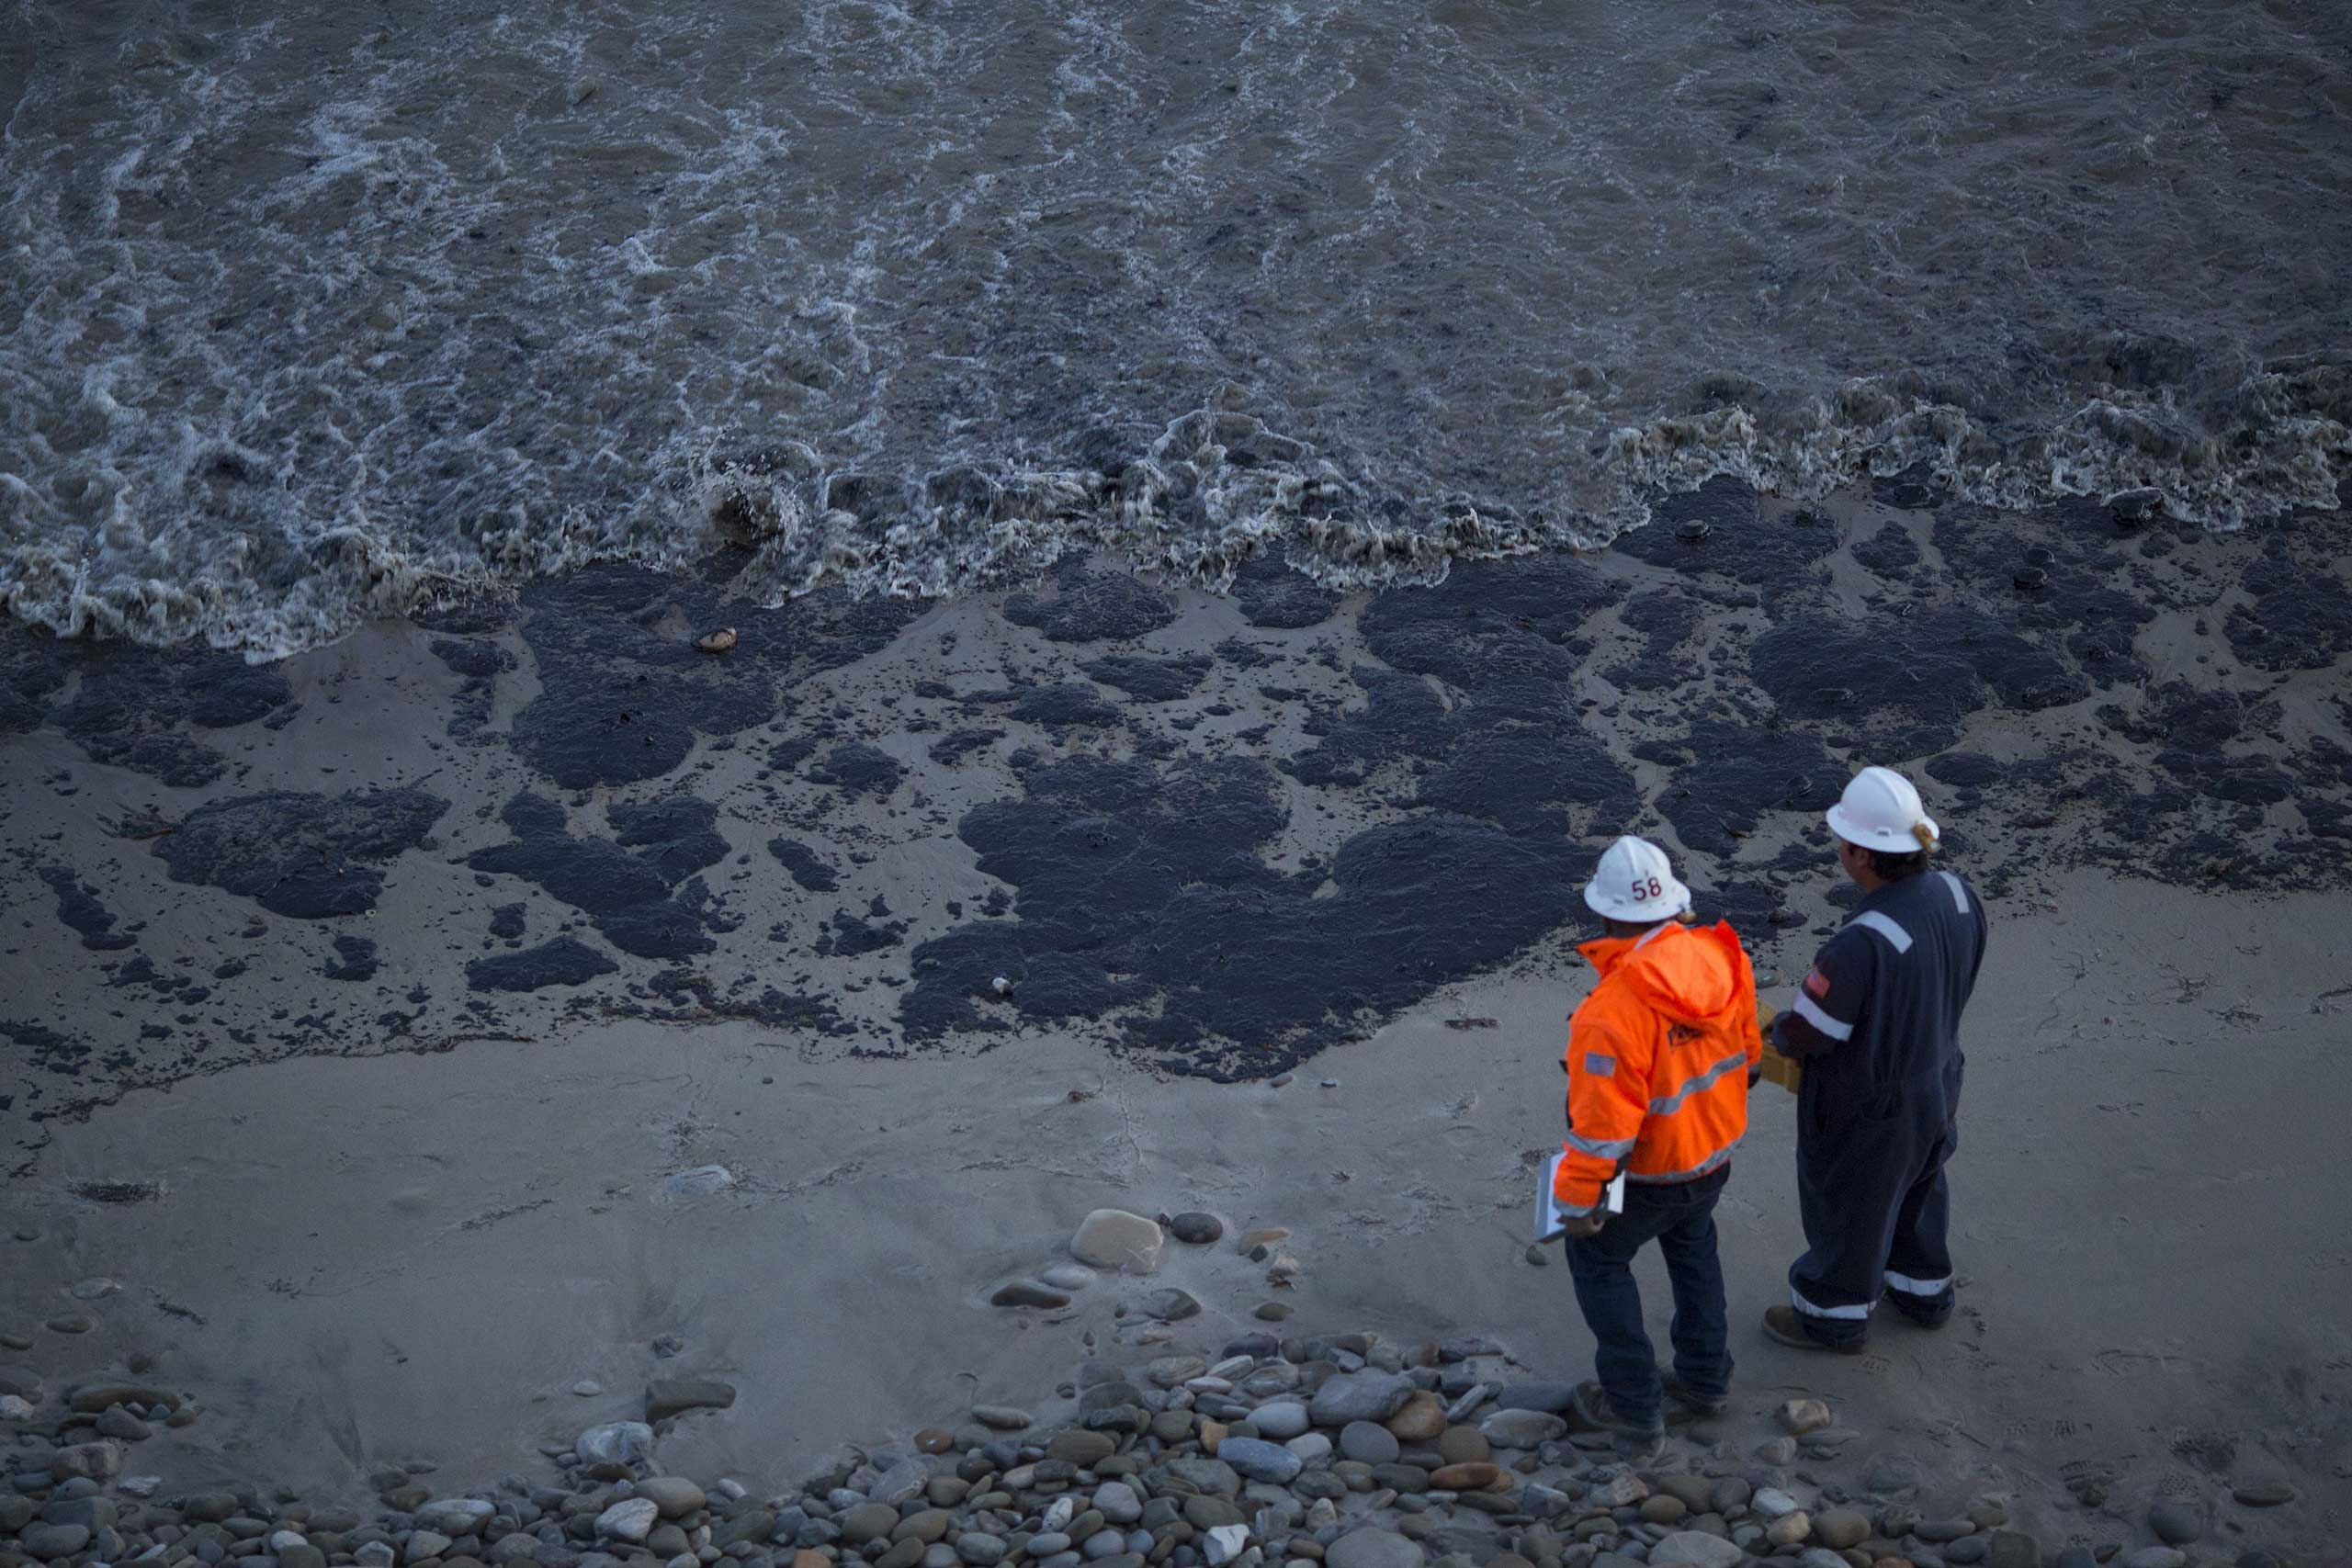 Officials walk along an the oil-covered beach in Goleta, Calif. on May 19, 2015.